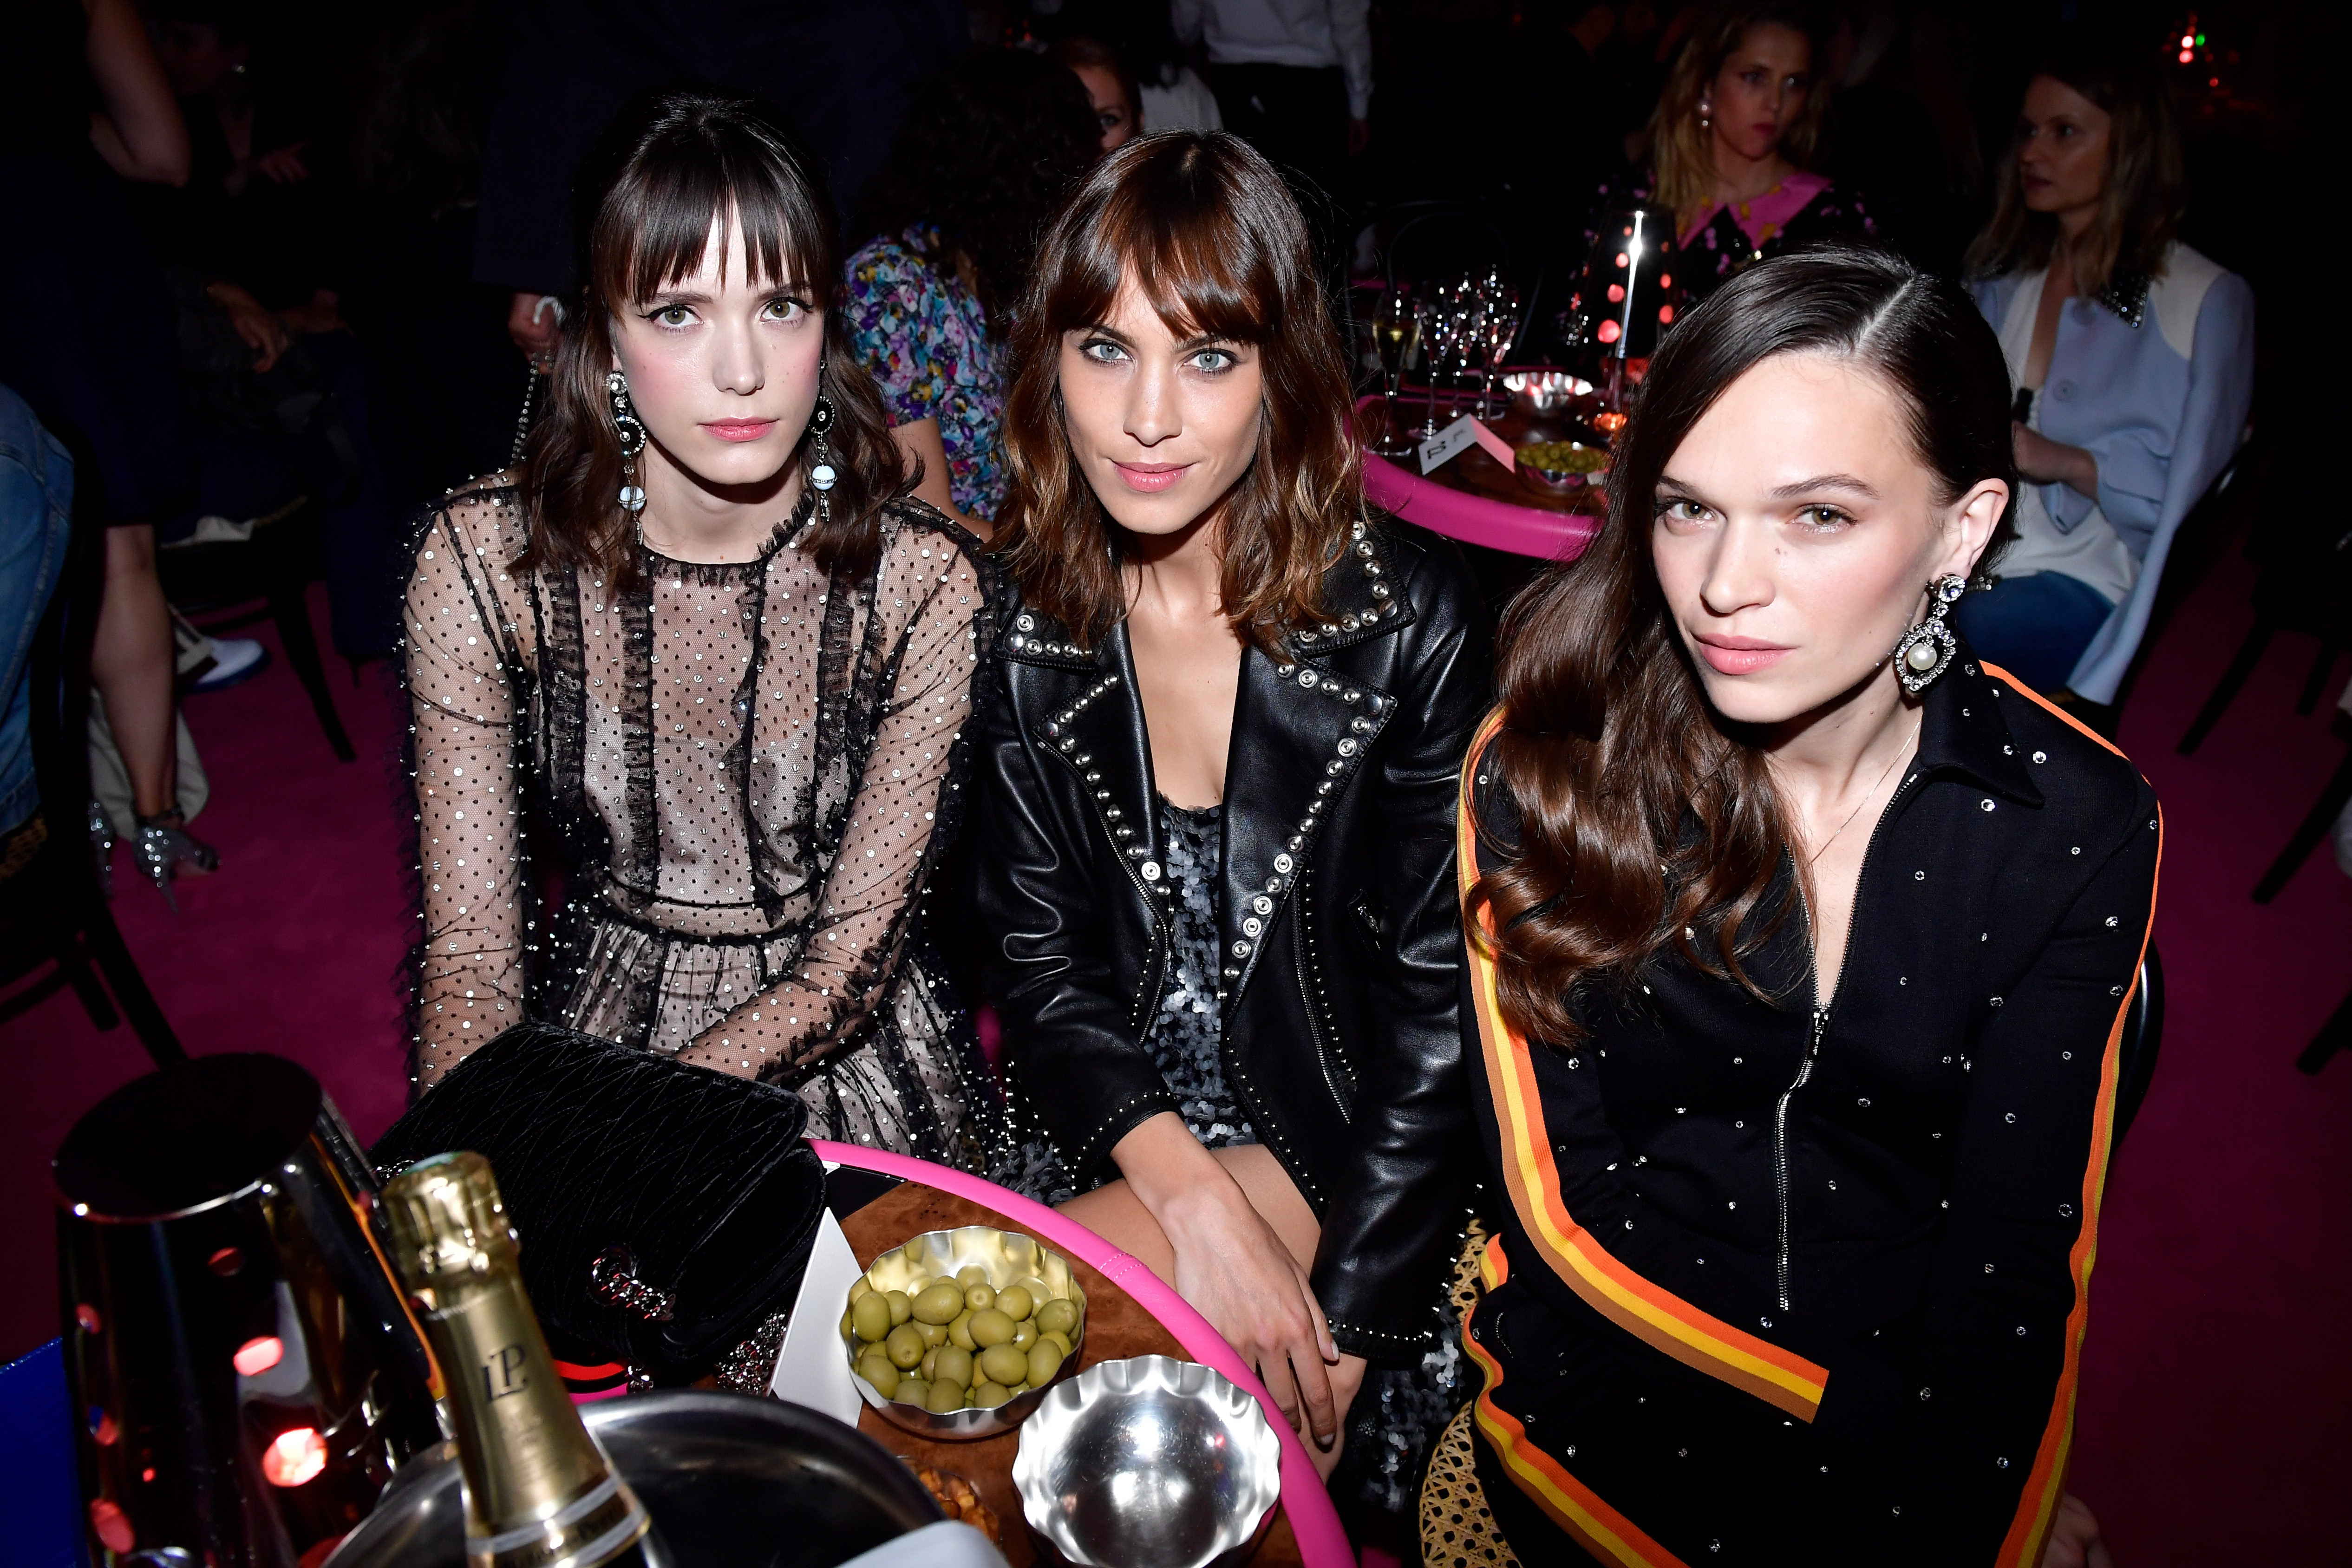 PARIS, FRANCE - JULY 02:  Stacy Martin, Alexa Chung and Anna Brewster attends Miu Miu Cruise Collection show as part of Haute Couture Paris Fashion Week on July 2, 2017 in Paris, France.  (Photo by Victor Boyko/Getty Images for Miu Miu)